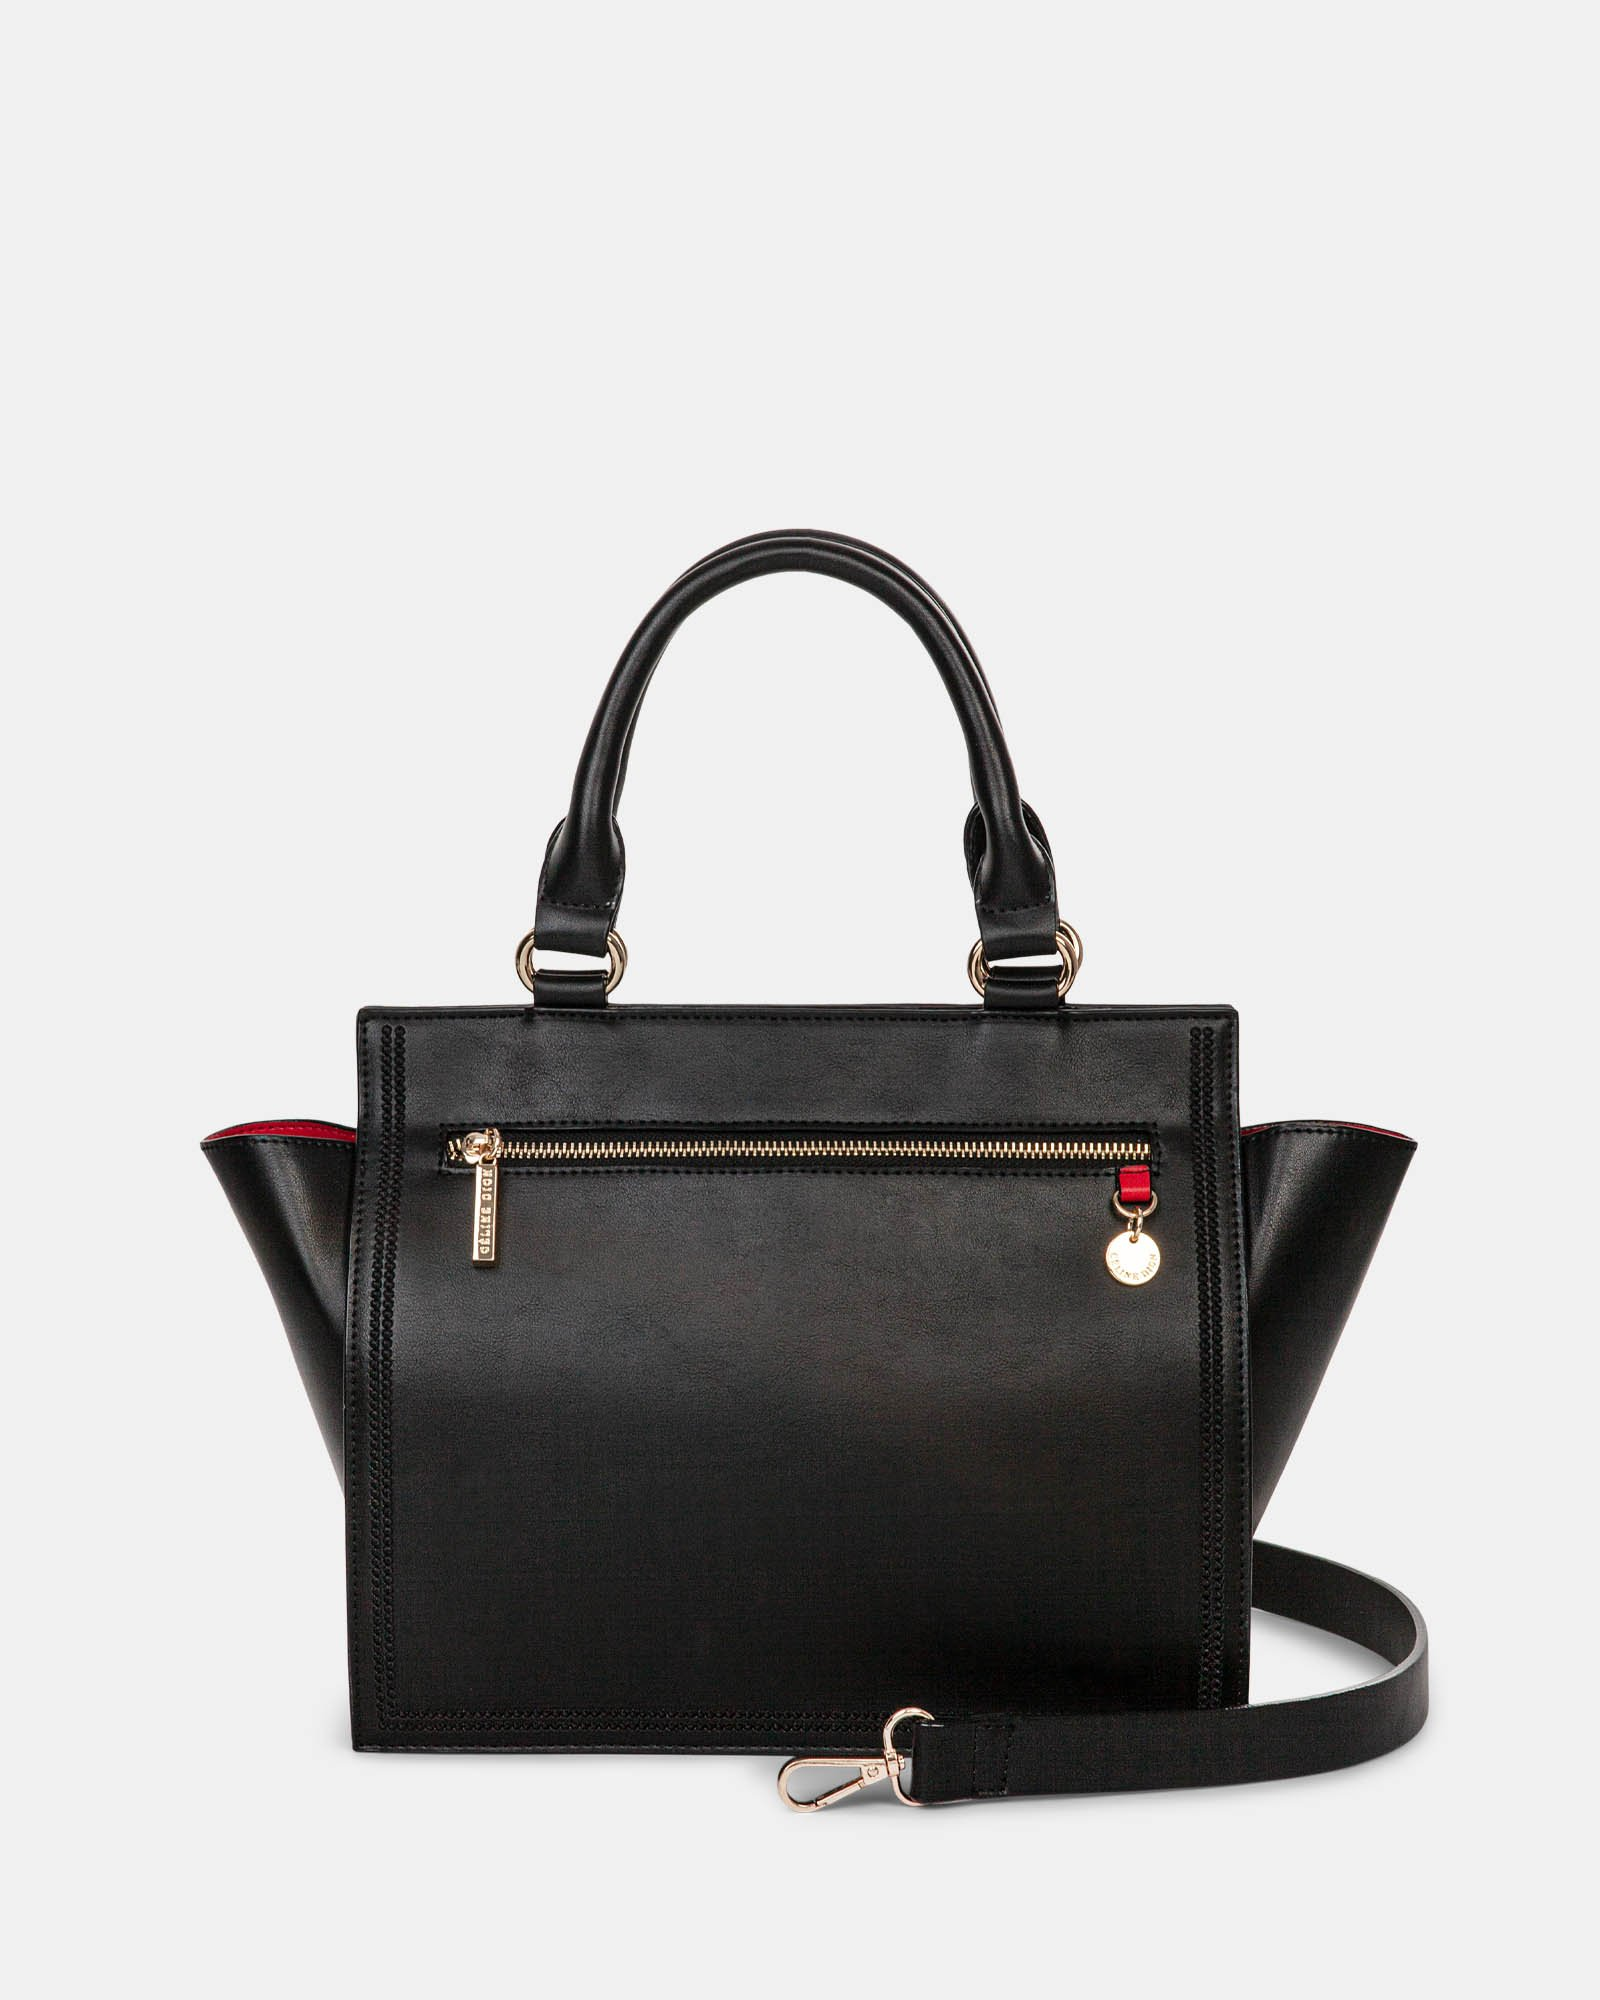 Amore – Satchel with Removable and adjustable crossbody strap - Black - Céline Dion - Zoom